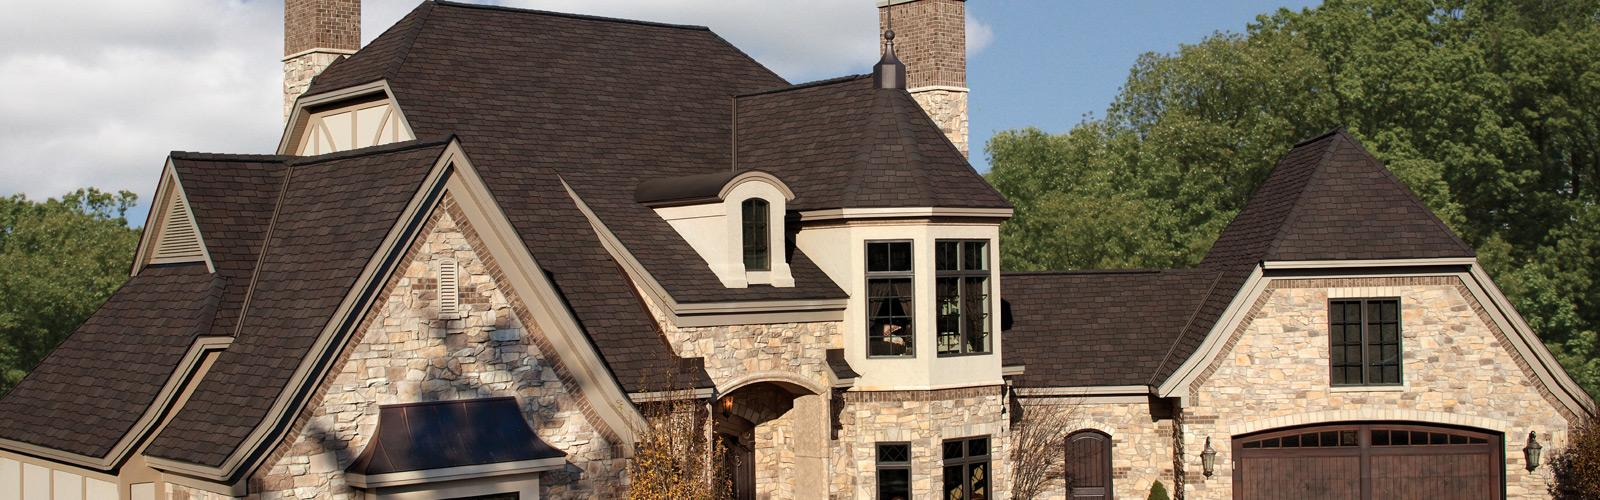 Exceptional Home | Done Right Roofing